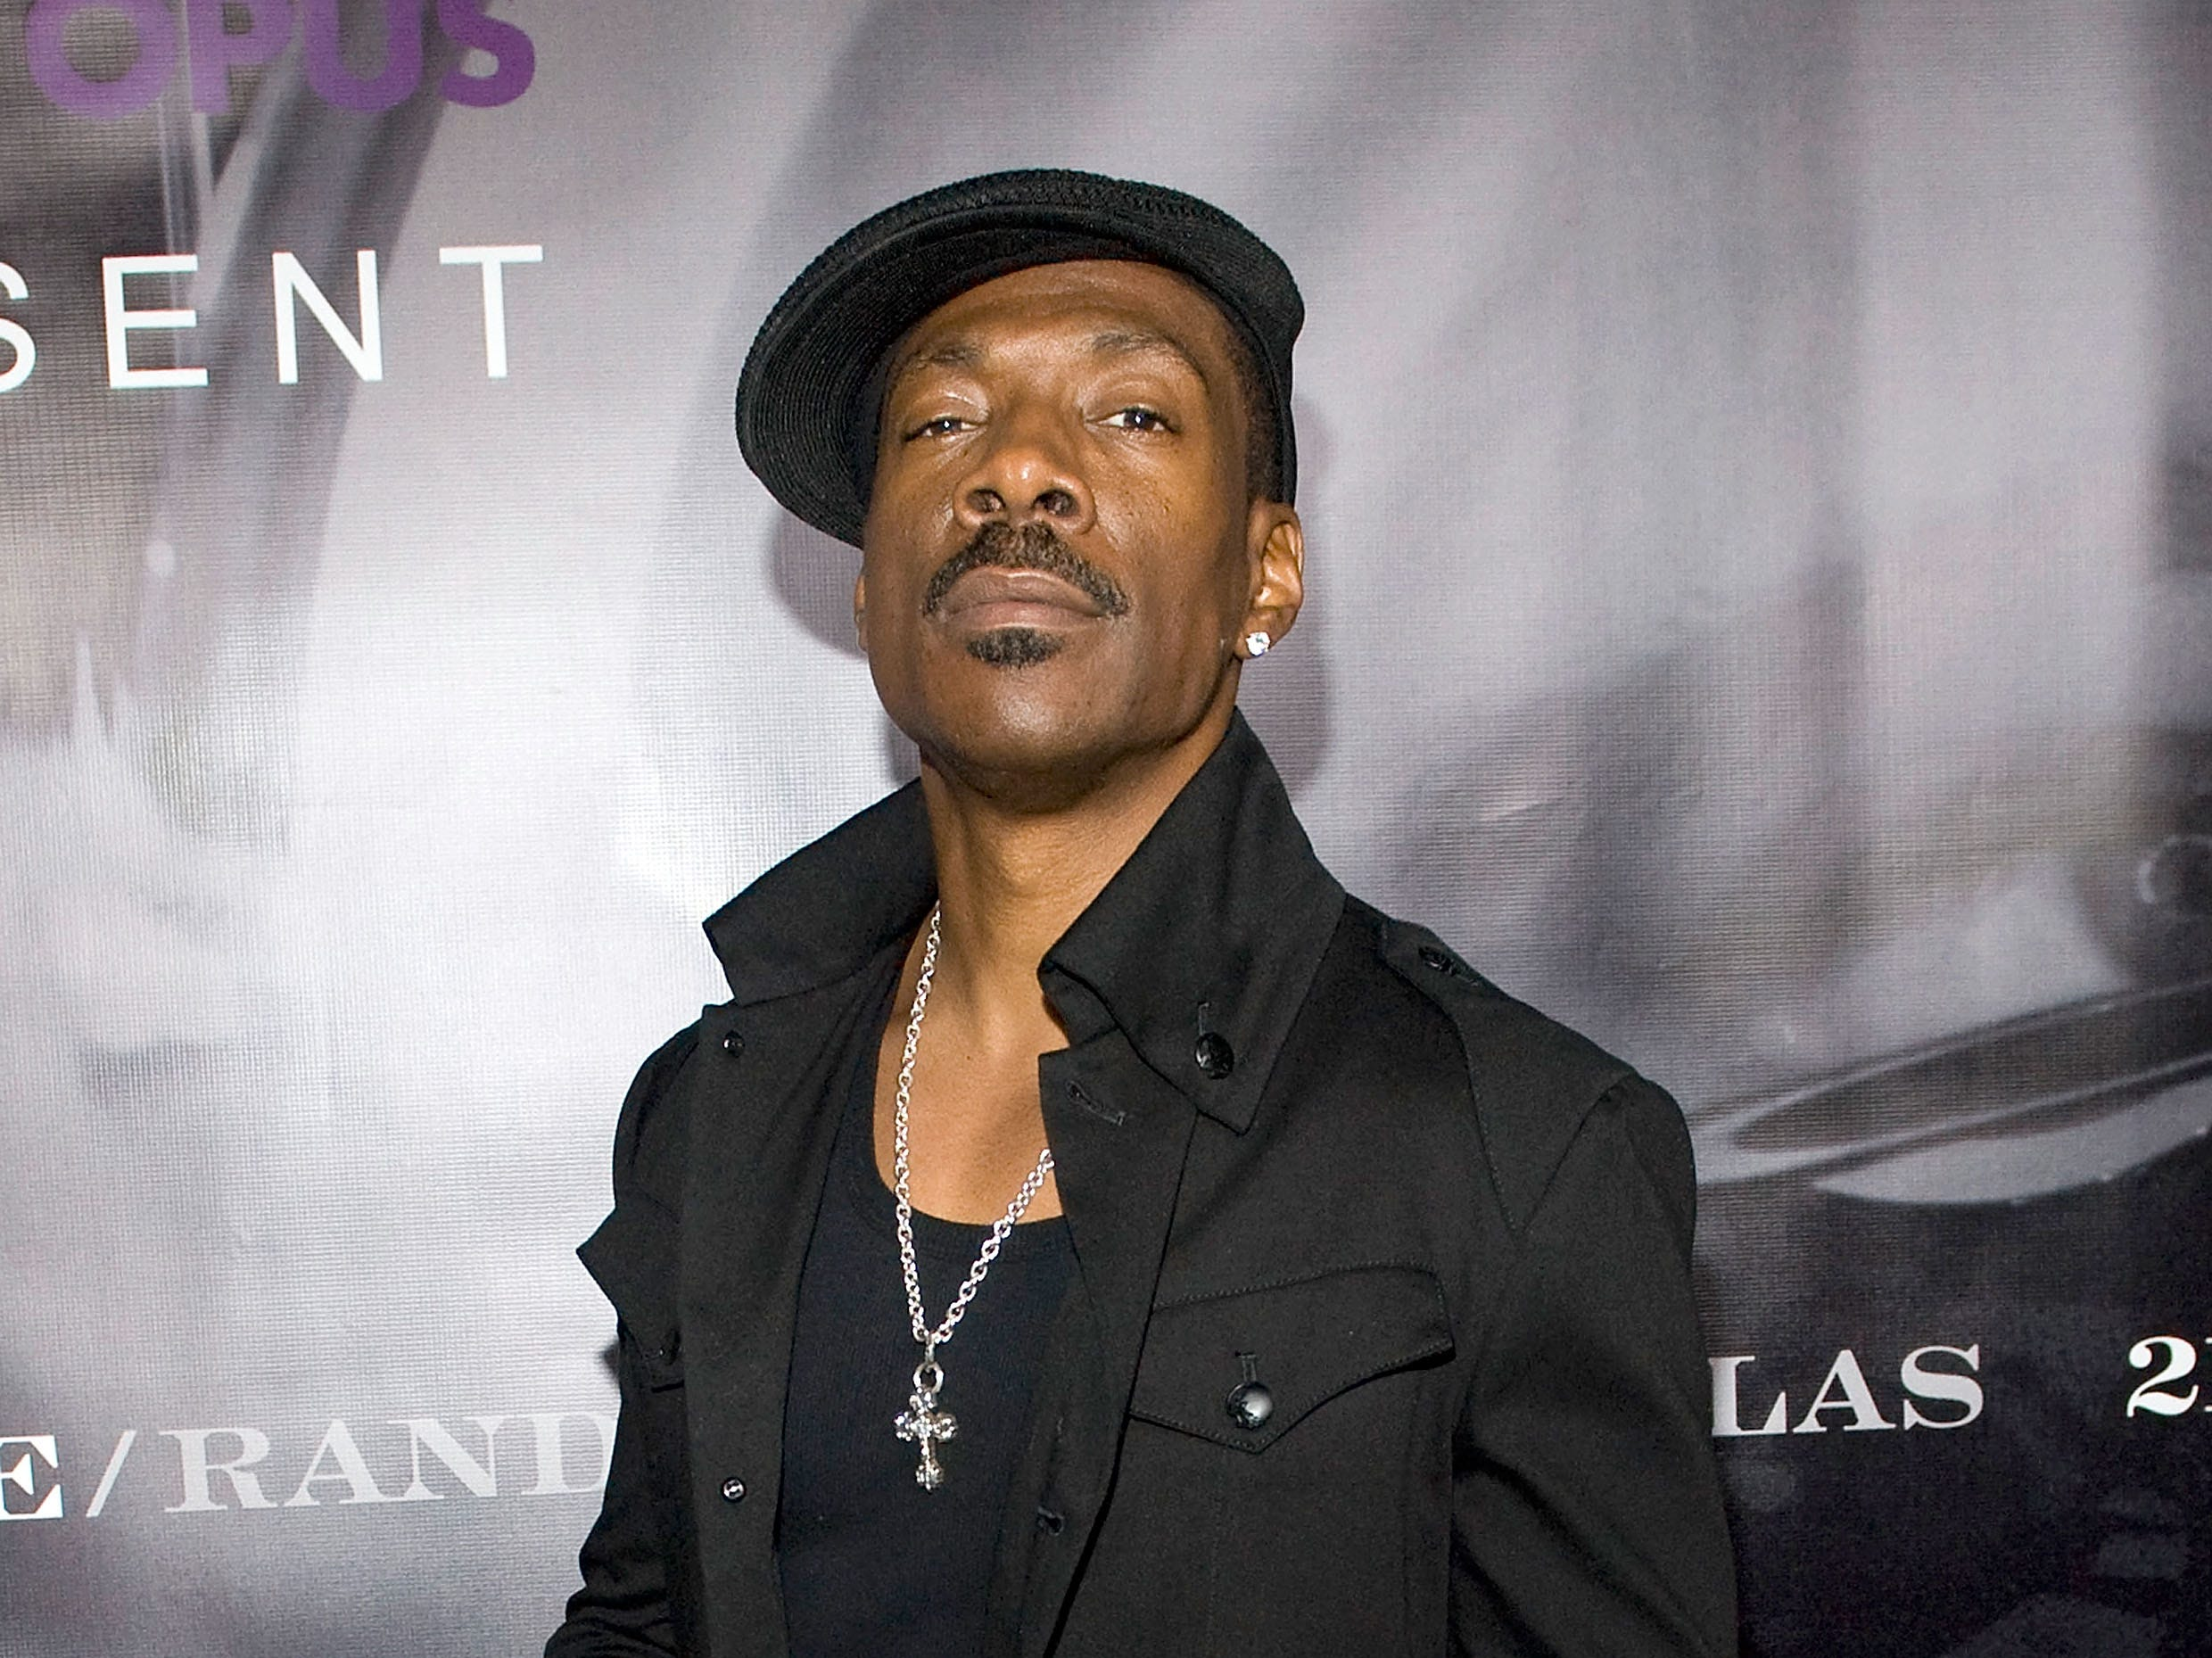 "LOS ANGELES, CA - MAY 30:  Actor Eddie Murphy arrives at a book party for ""21 Nights"" by Prince and Randee St. Nicholas held at a private residence on May 30, 2008 in Los Angeles, California.  (Photo by Charley Gallay/Getty Images) ORG XMIT: 81282128 GTY ID: 82128CG002_PRINCE_S_BOOK"